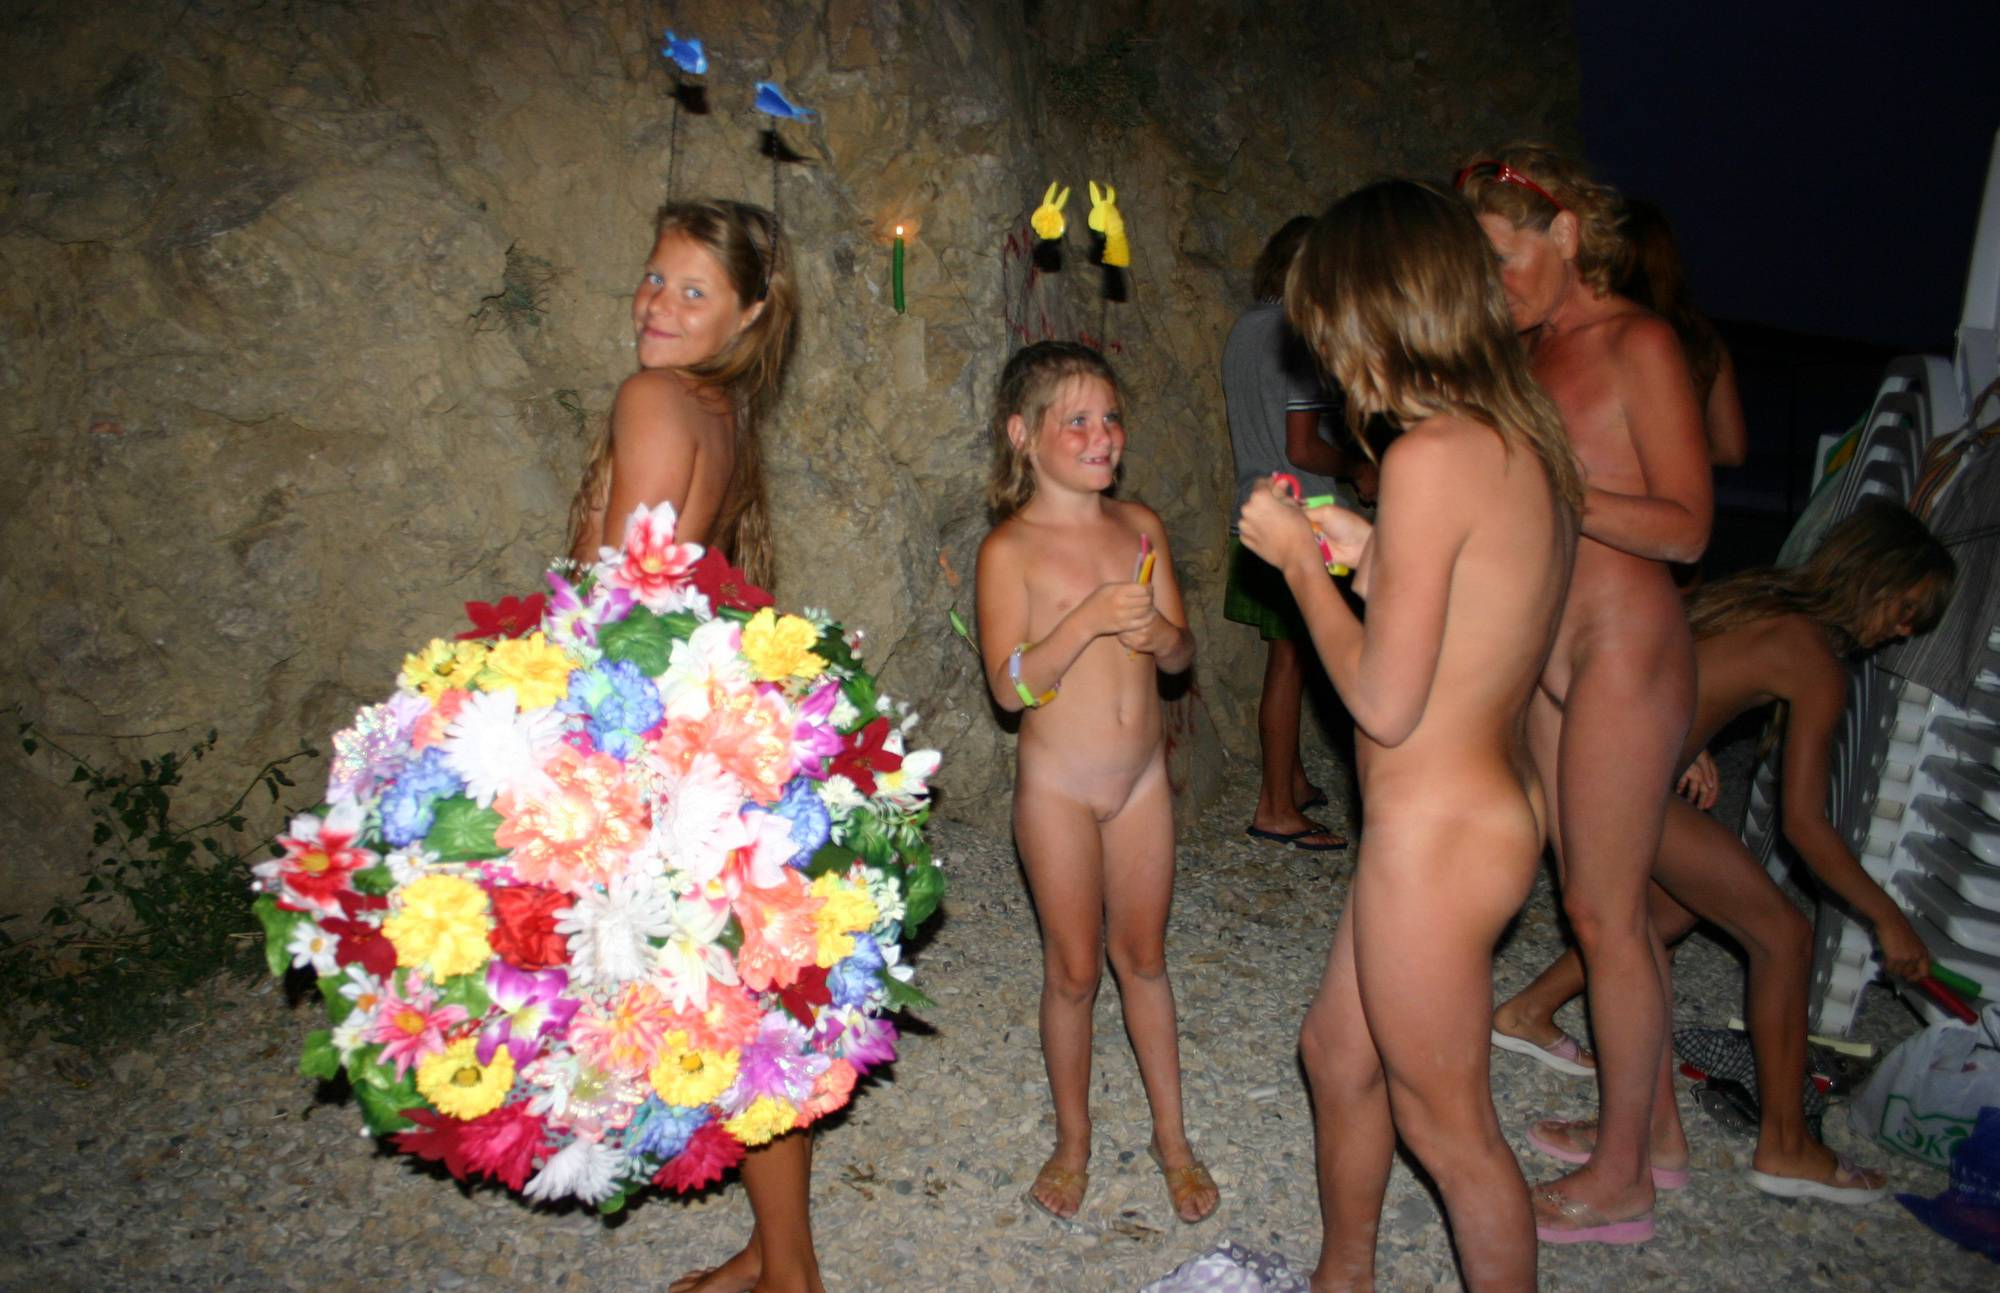 Pure Nudism Photos-Nights Candle and Groups - 1